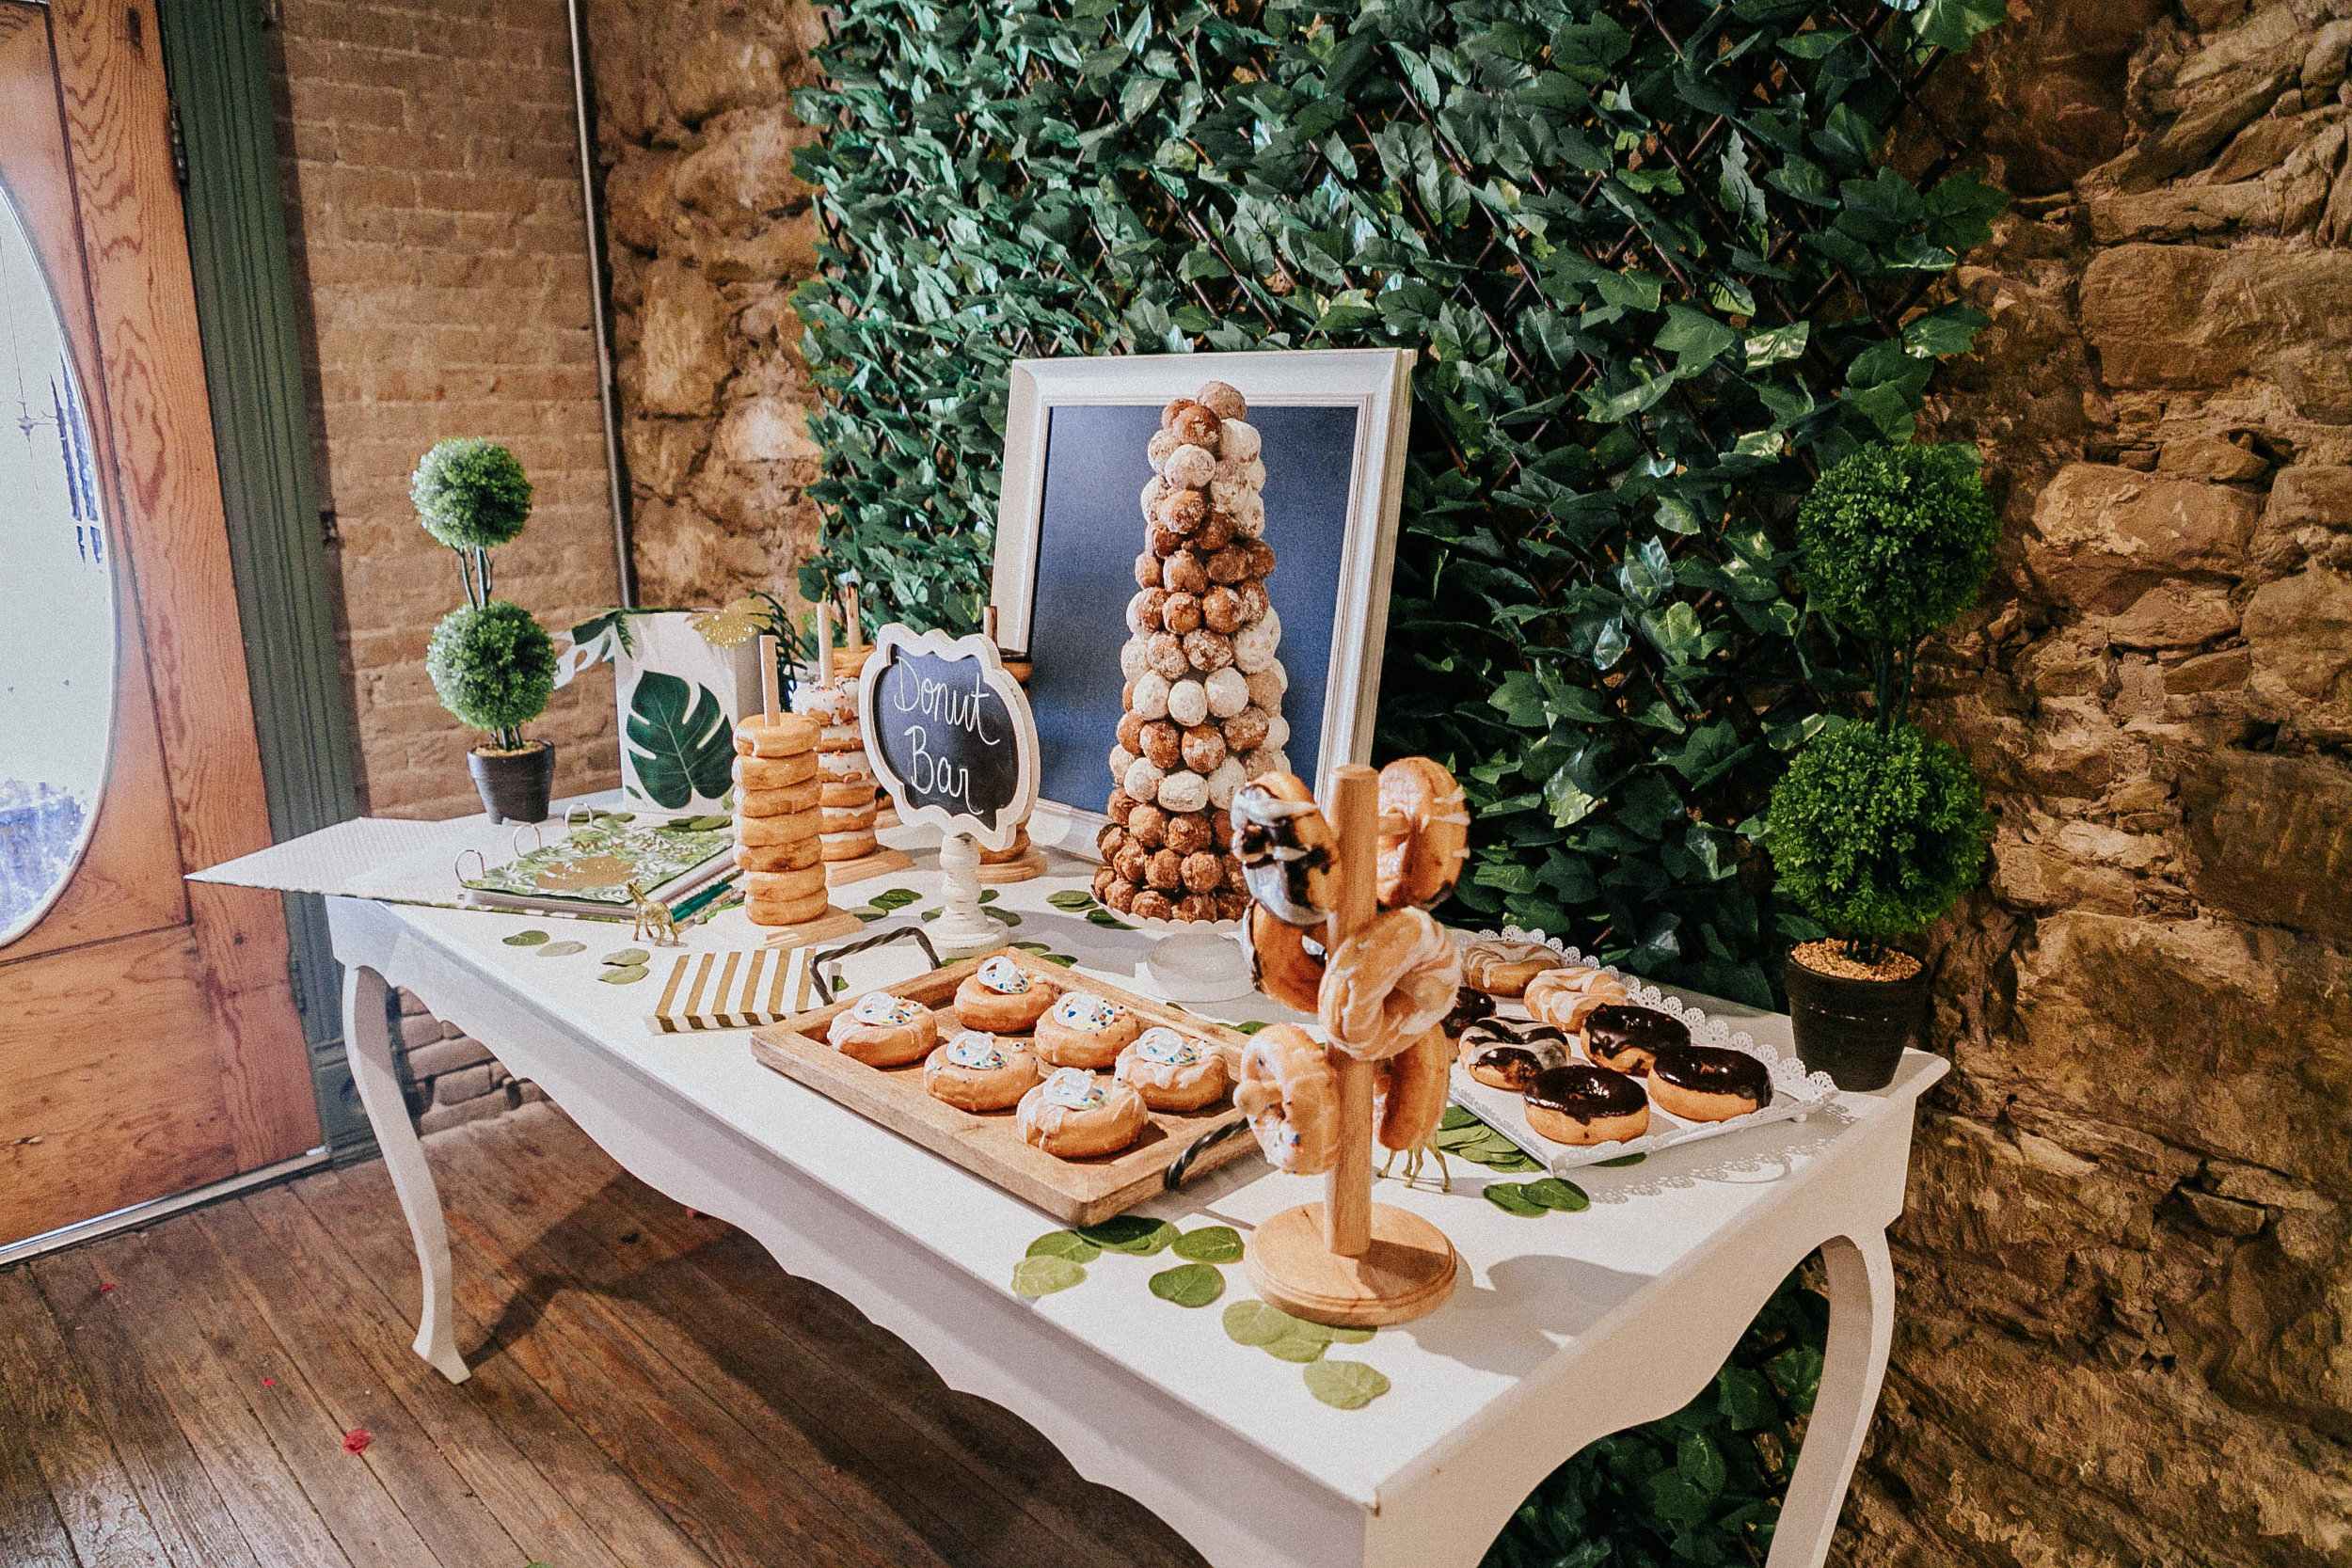 I was crazy about a Donuts bar, and here is the table!